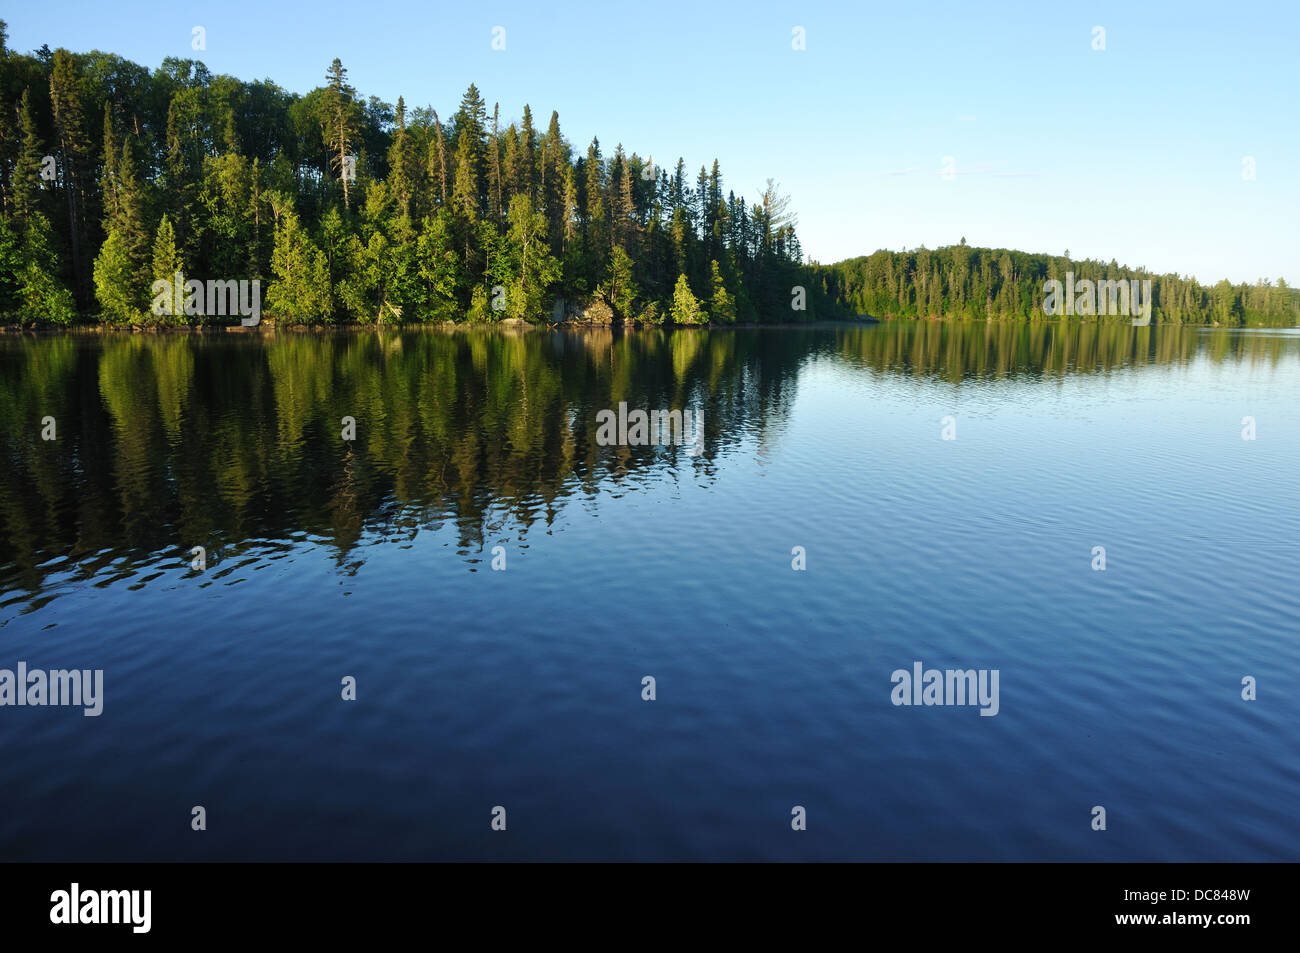 Lake and forest in Boundary Waters Canoe Area Wilderness, Superior National Forest, Minnesota, USA - Stock Image